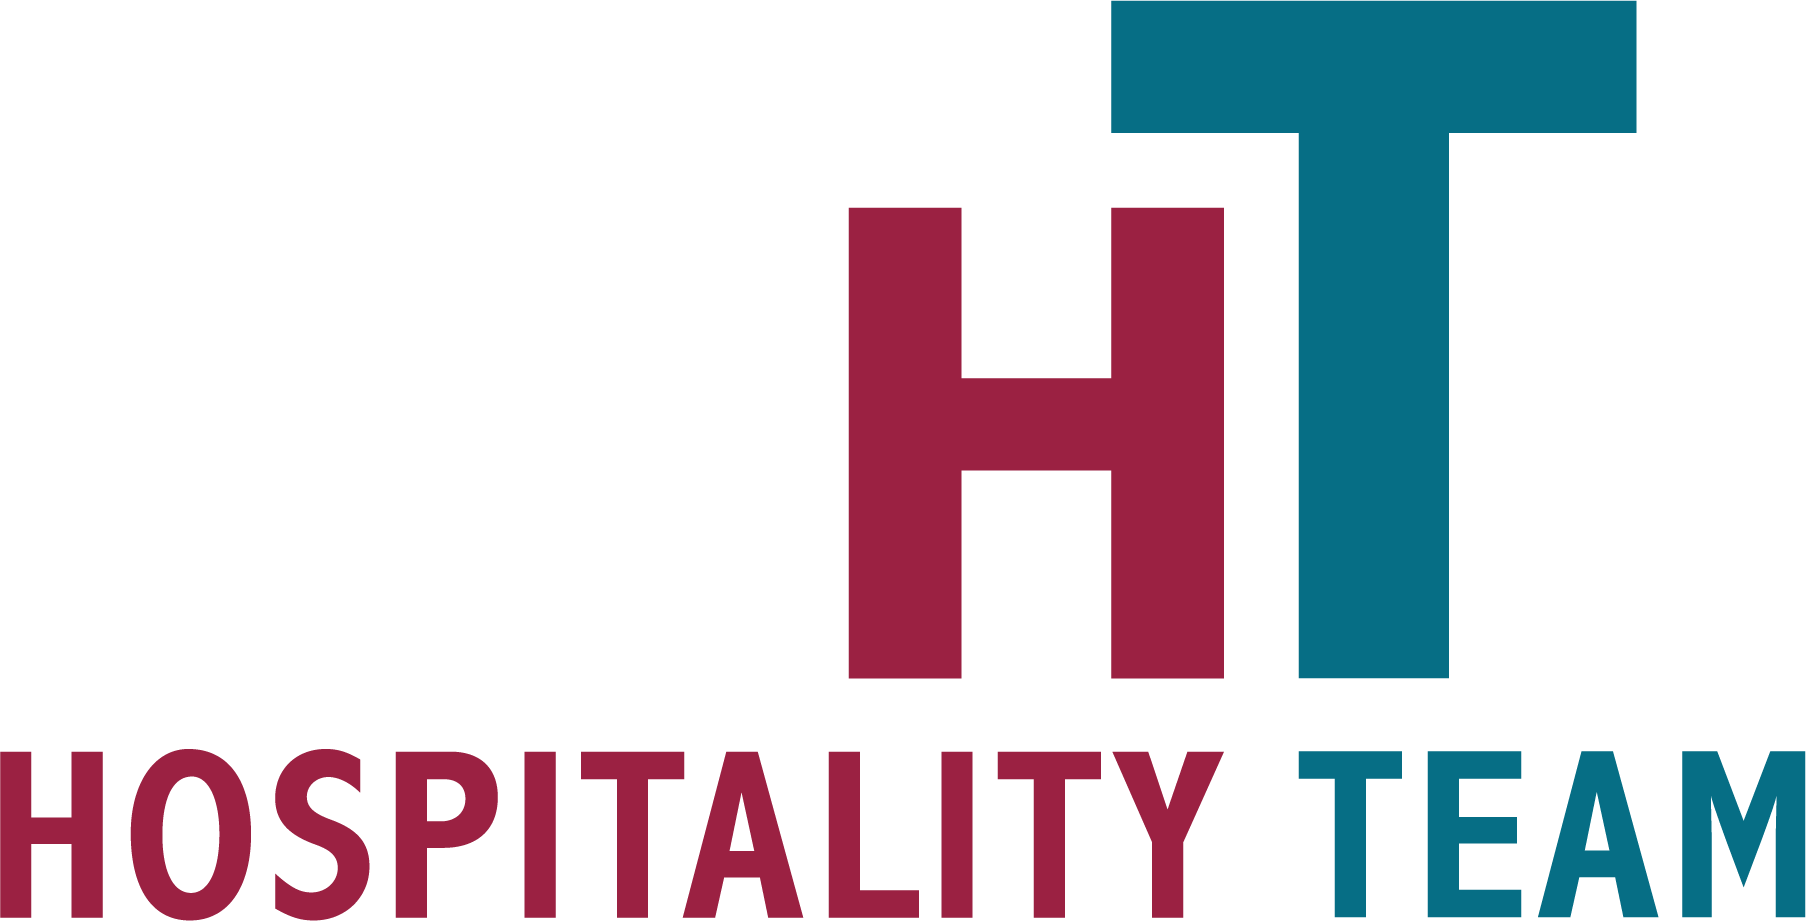 , Privacy Policy, Hospitality Team, Hospitality Team